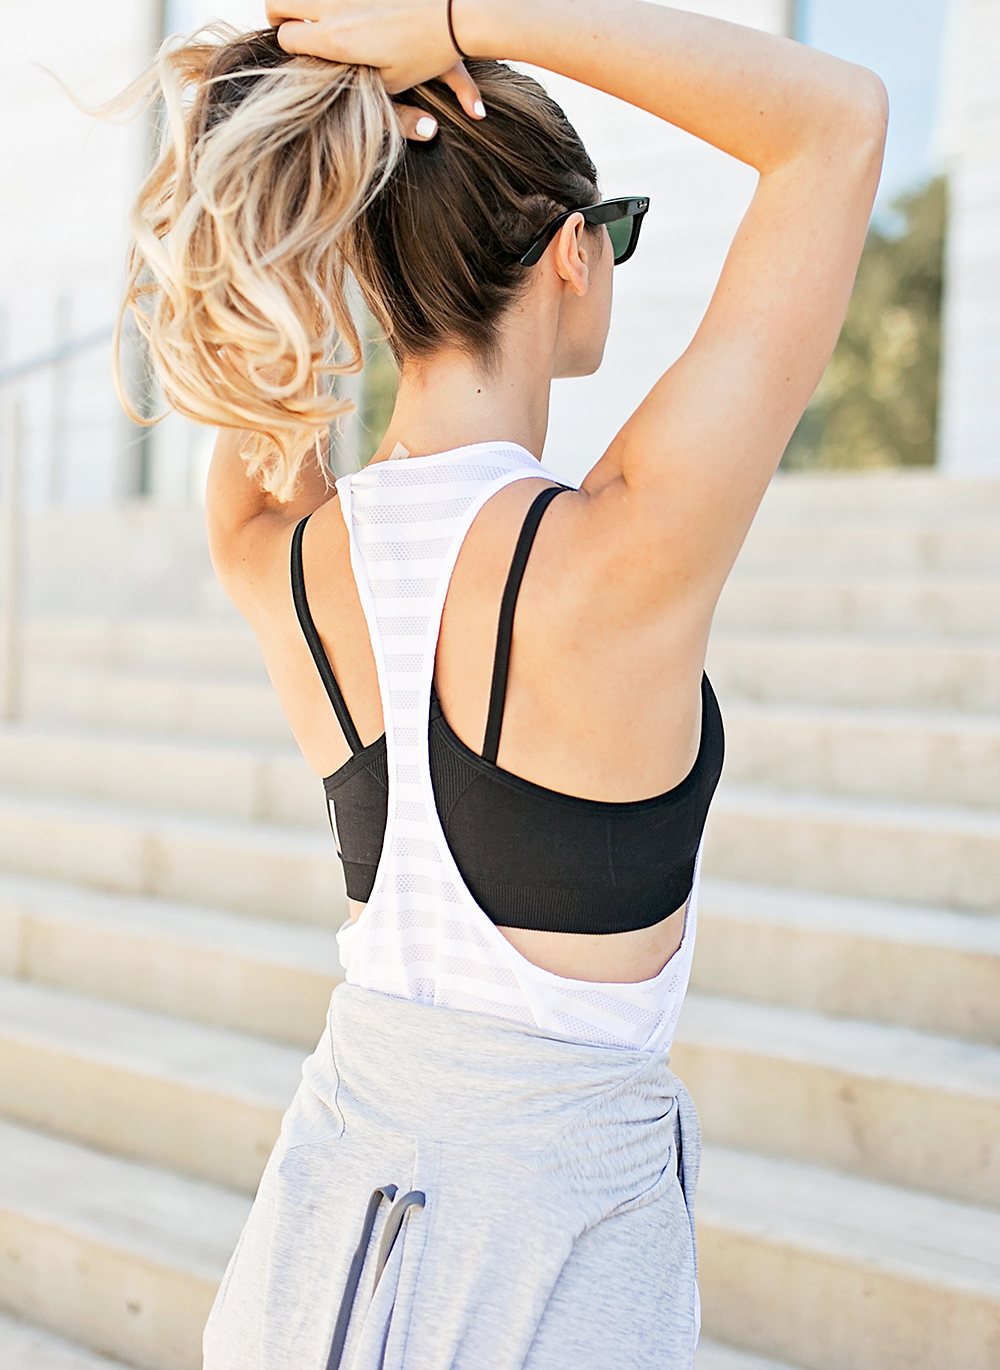 livvyland-blog-olivia-watson-under-armour-running-shoes-finish-line-cute-workout-outfit-2